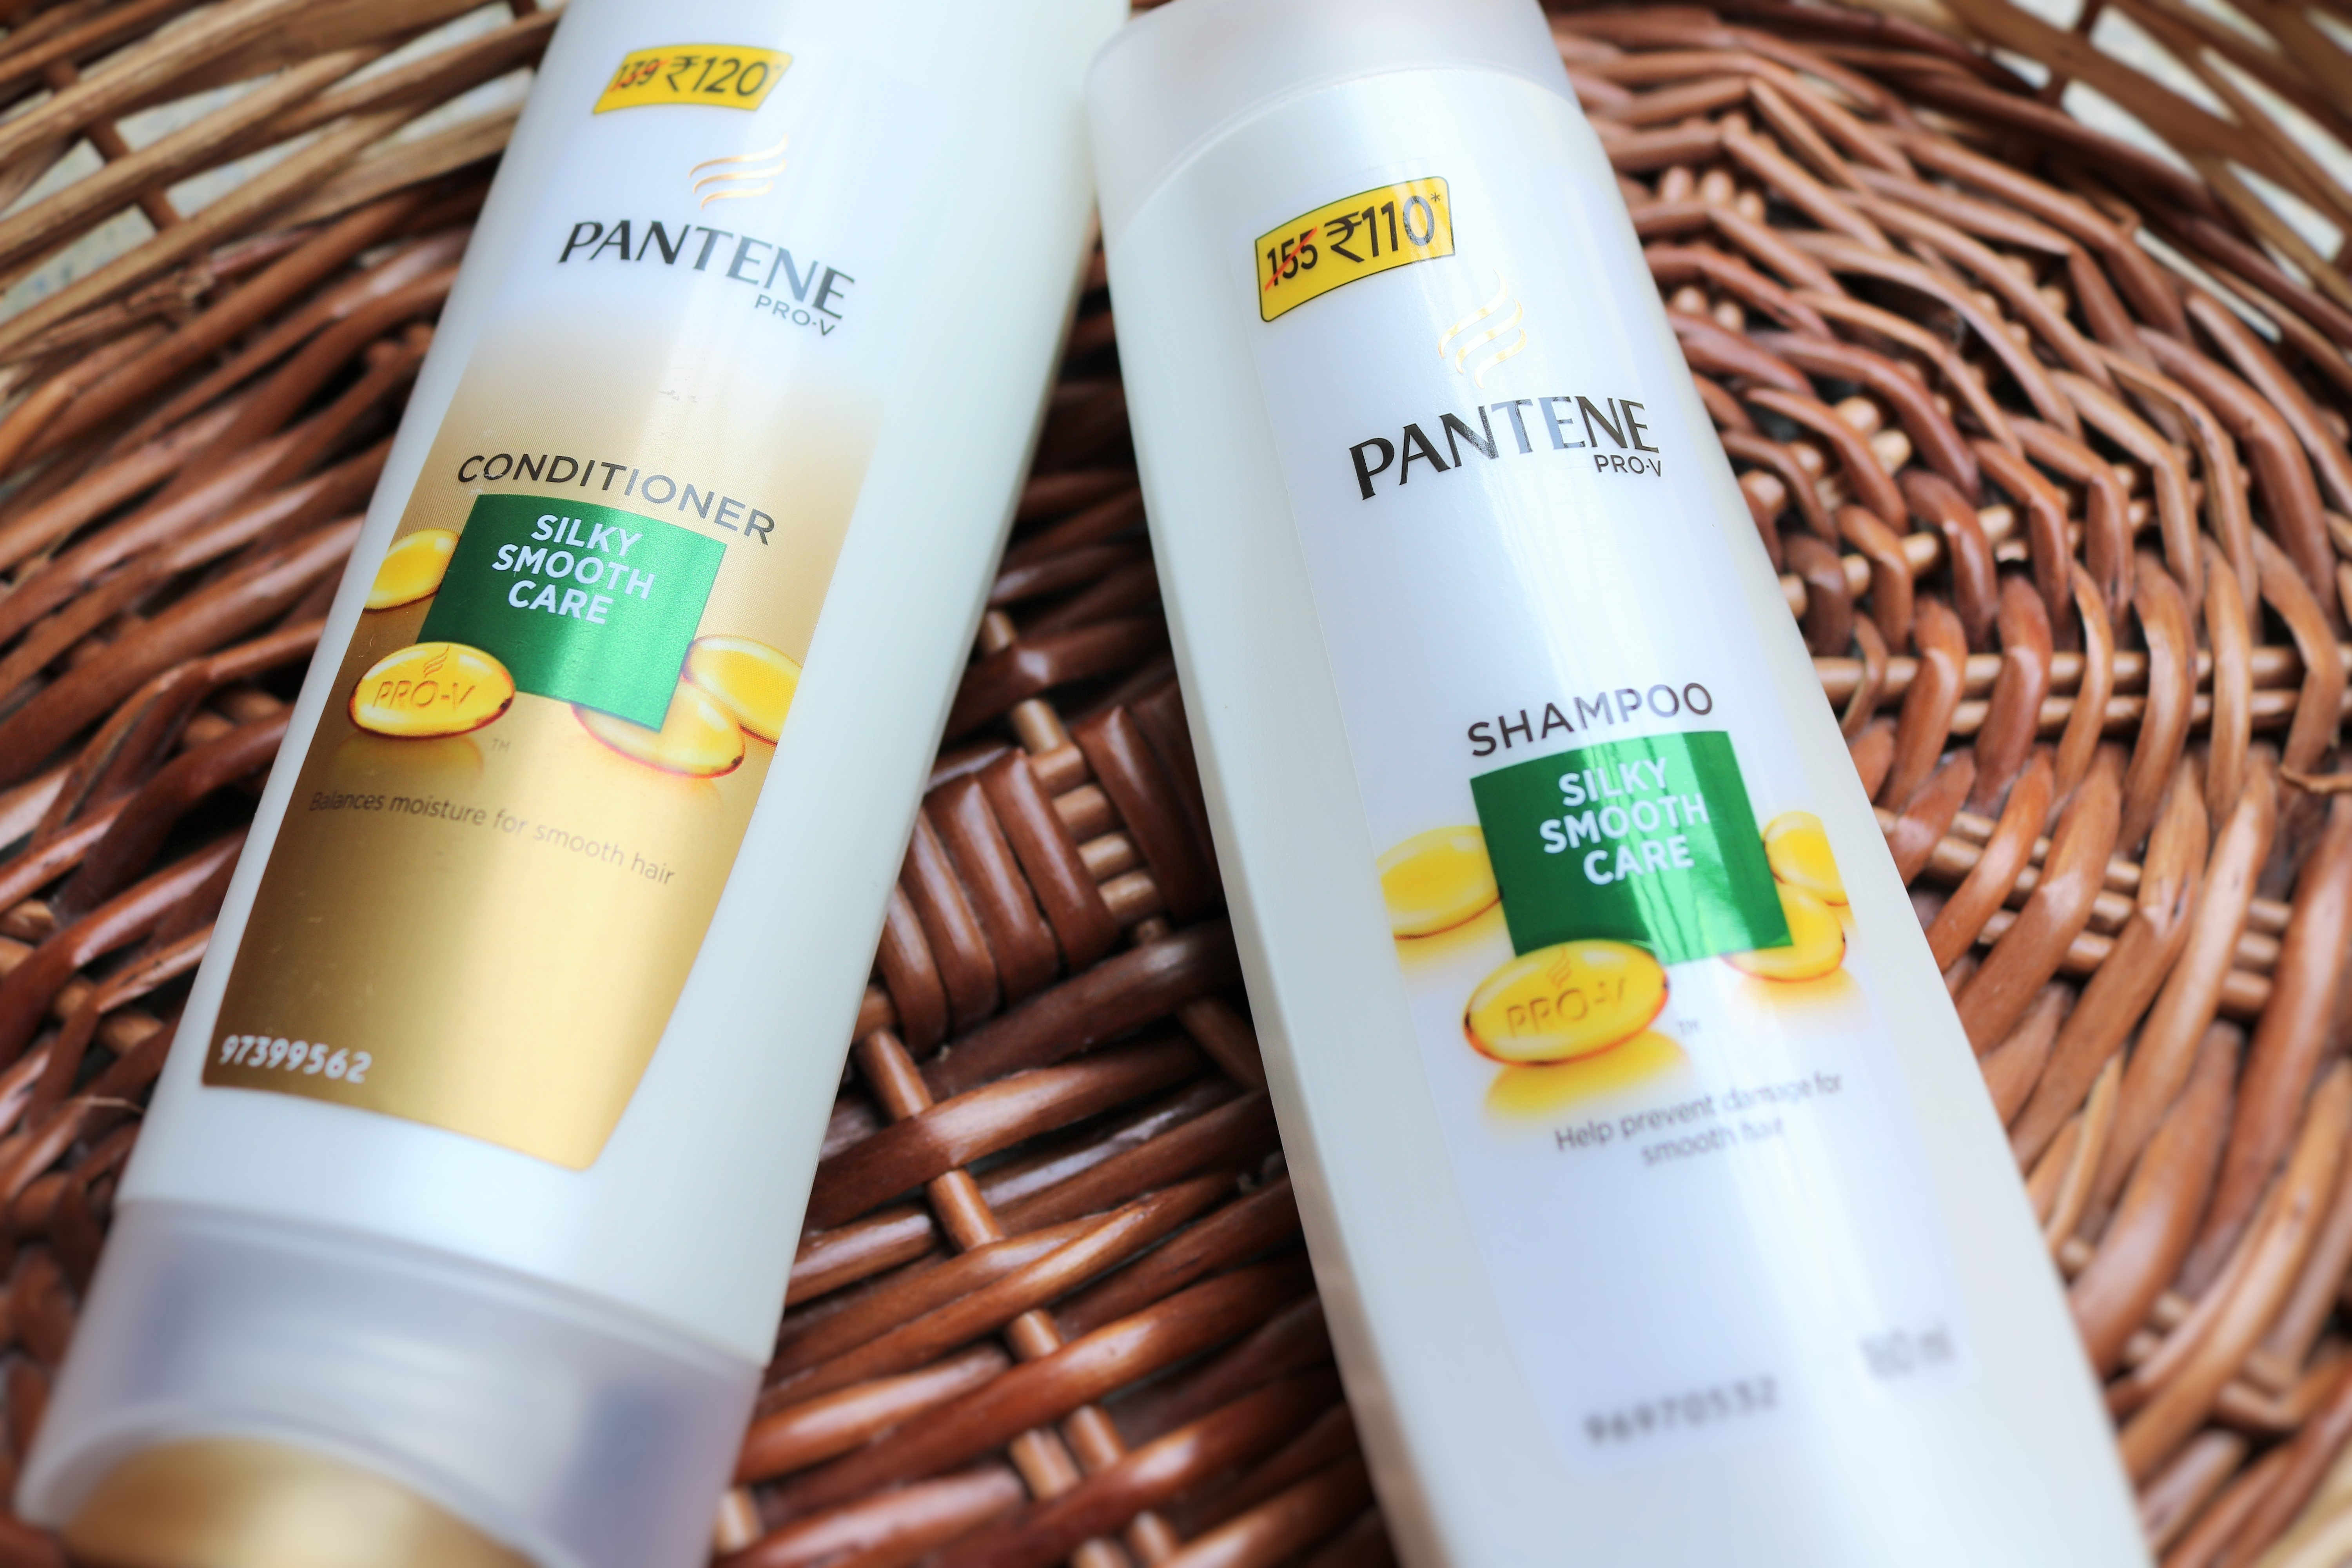 Pantene Pro-V Silky Smooth Care Shampoo and Conditioner